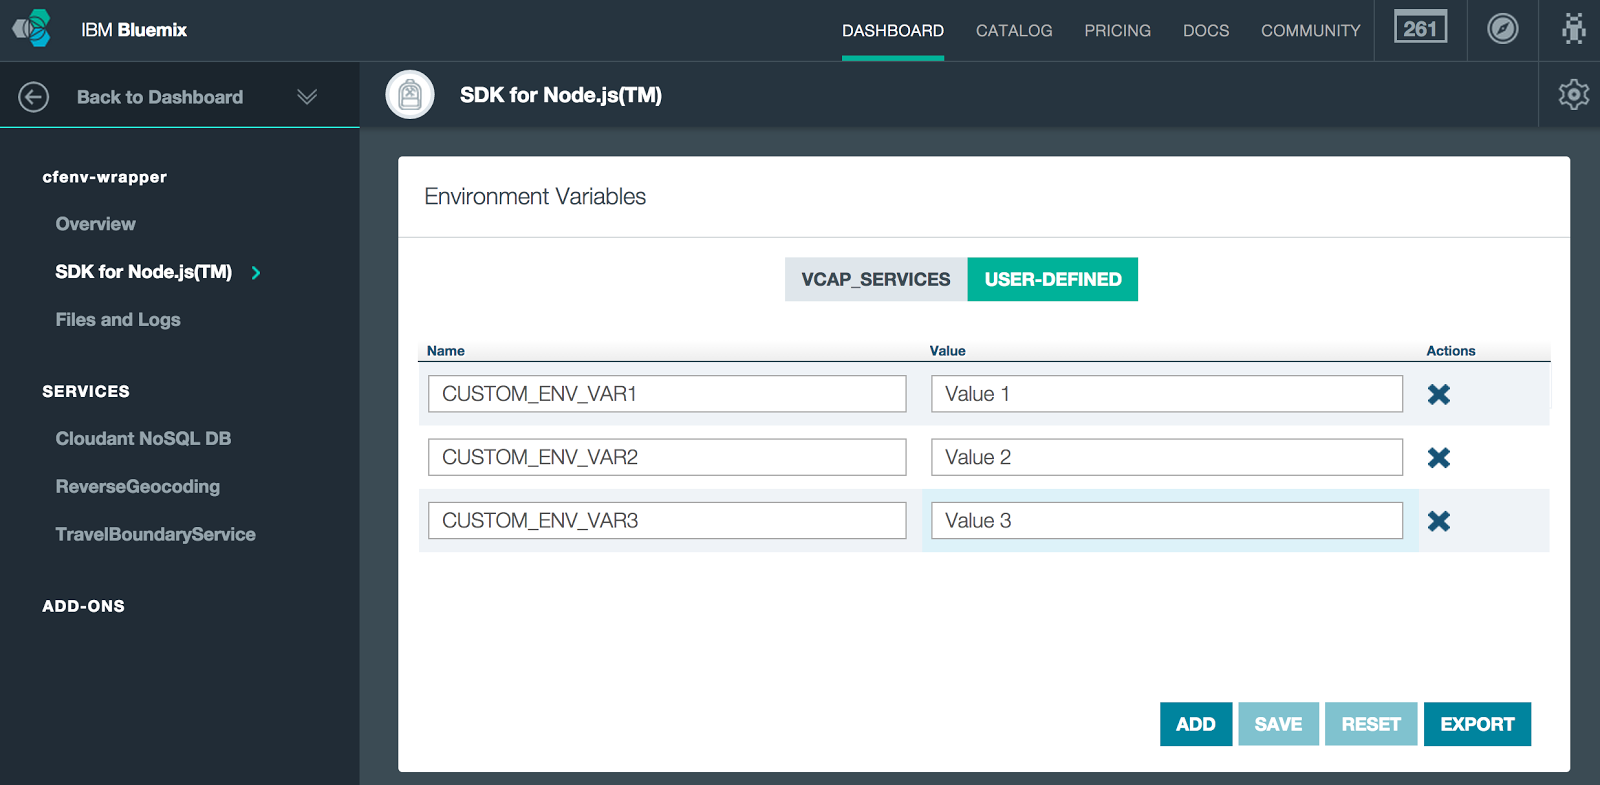 Bluemix UI: Environment Variables for cfenv-wrapper